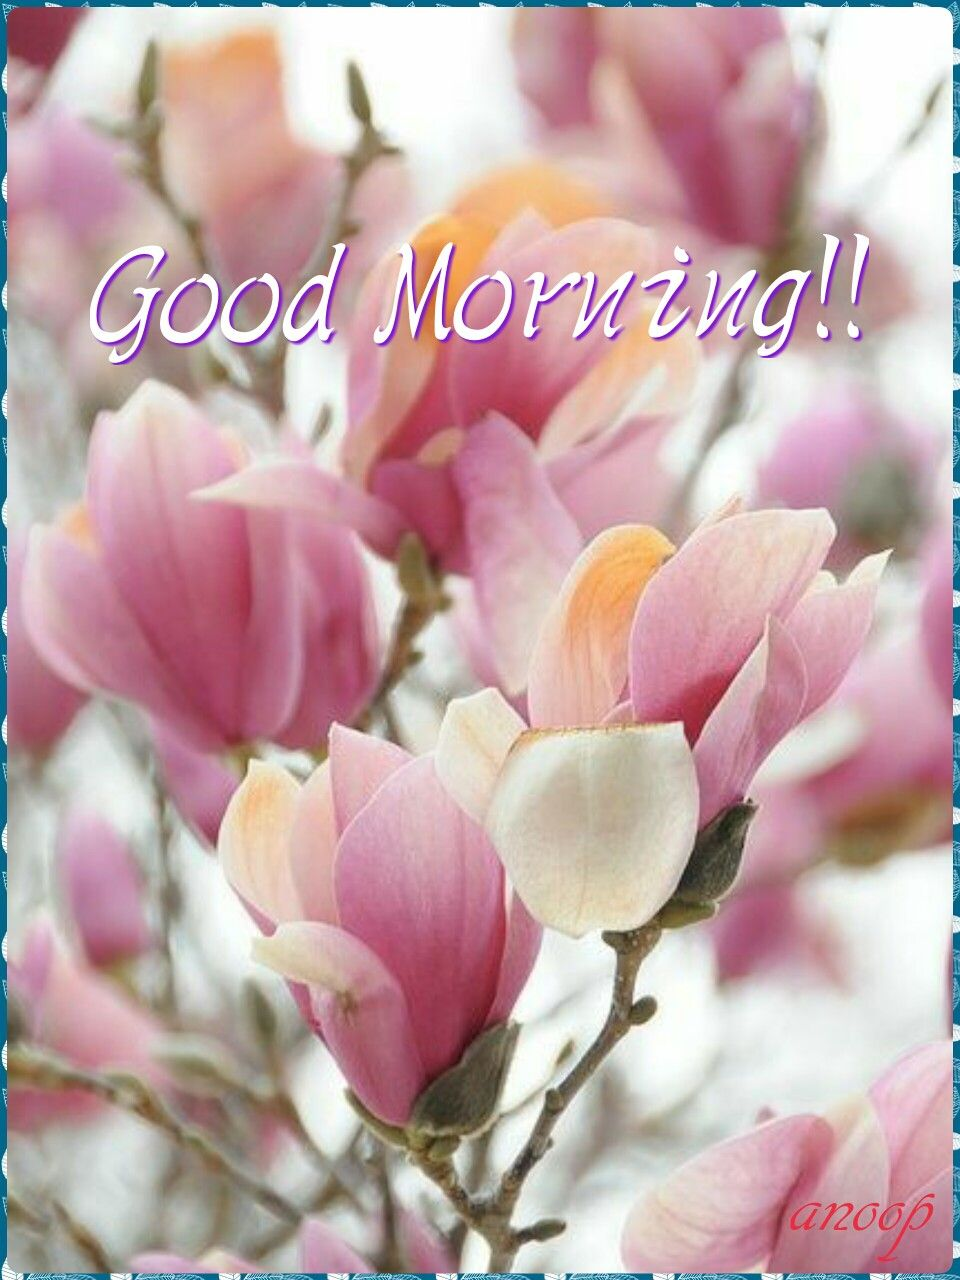 Good Morning Sweetheart I Hope You Had A Good Night I Am Going To